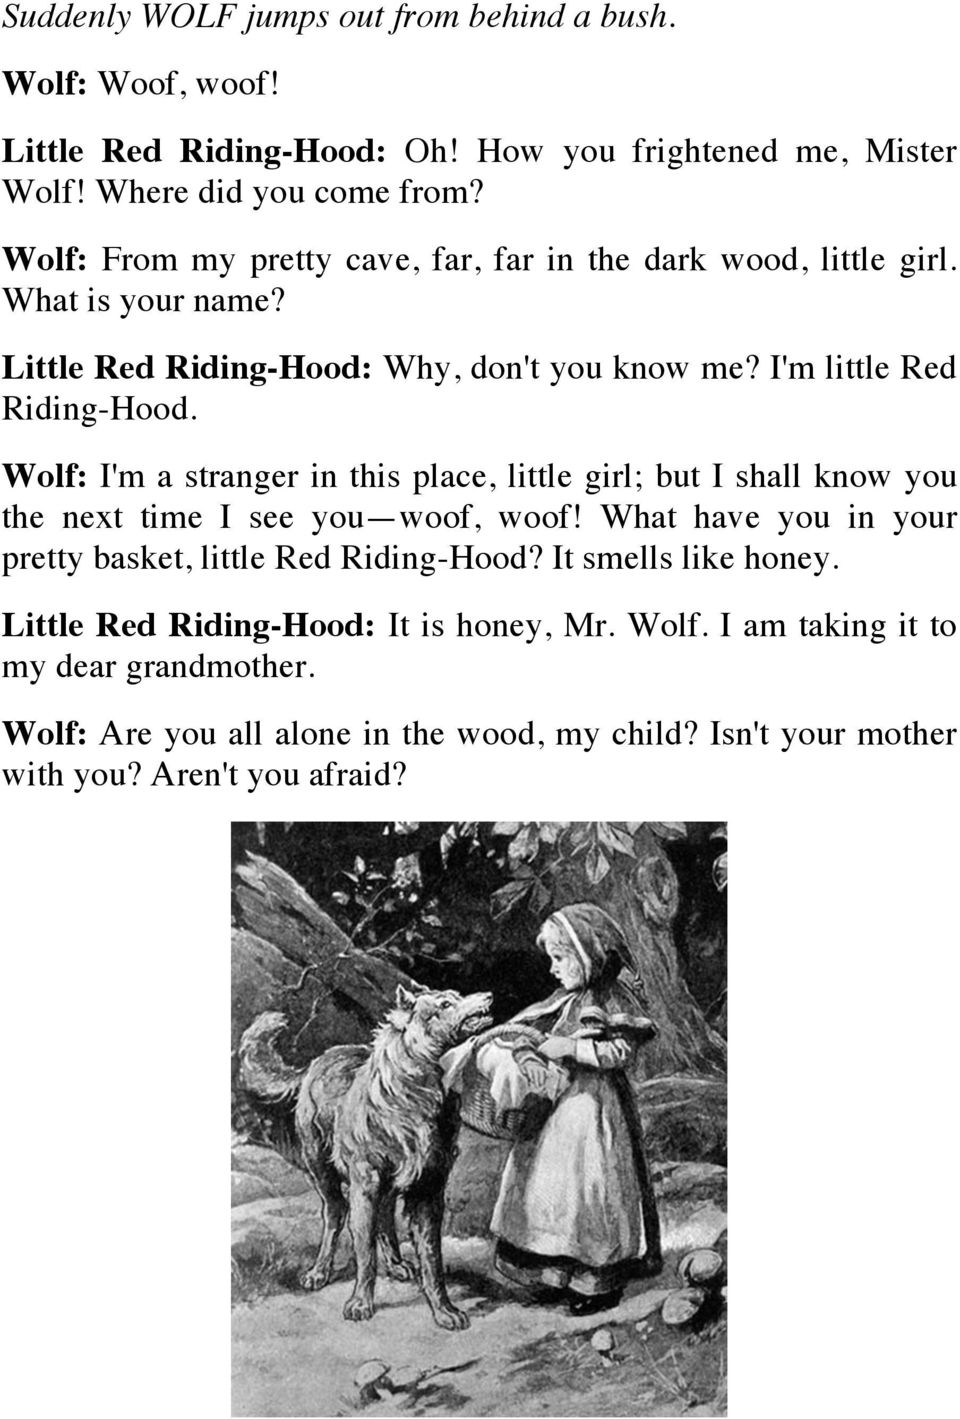 Wolf: I'm a stranger in this place, little girl; but I shall know you the next time I see you woof, woof! What have you in your pretty basket, little Red Riding-Hood?